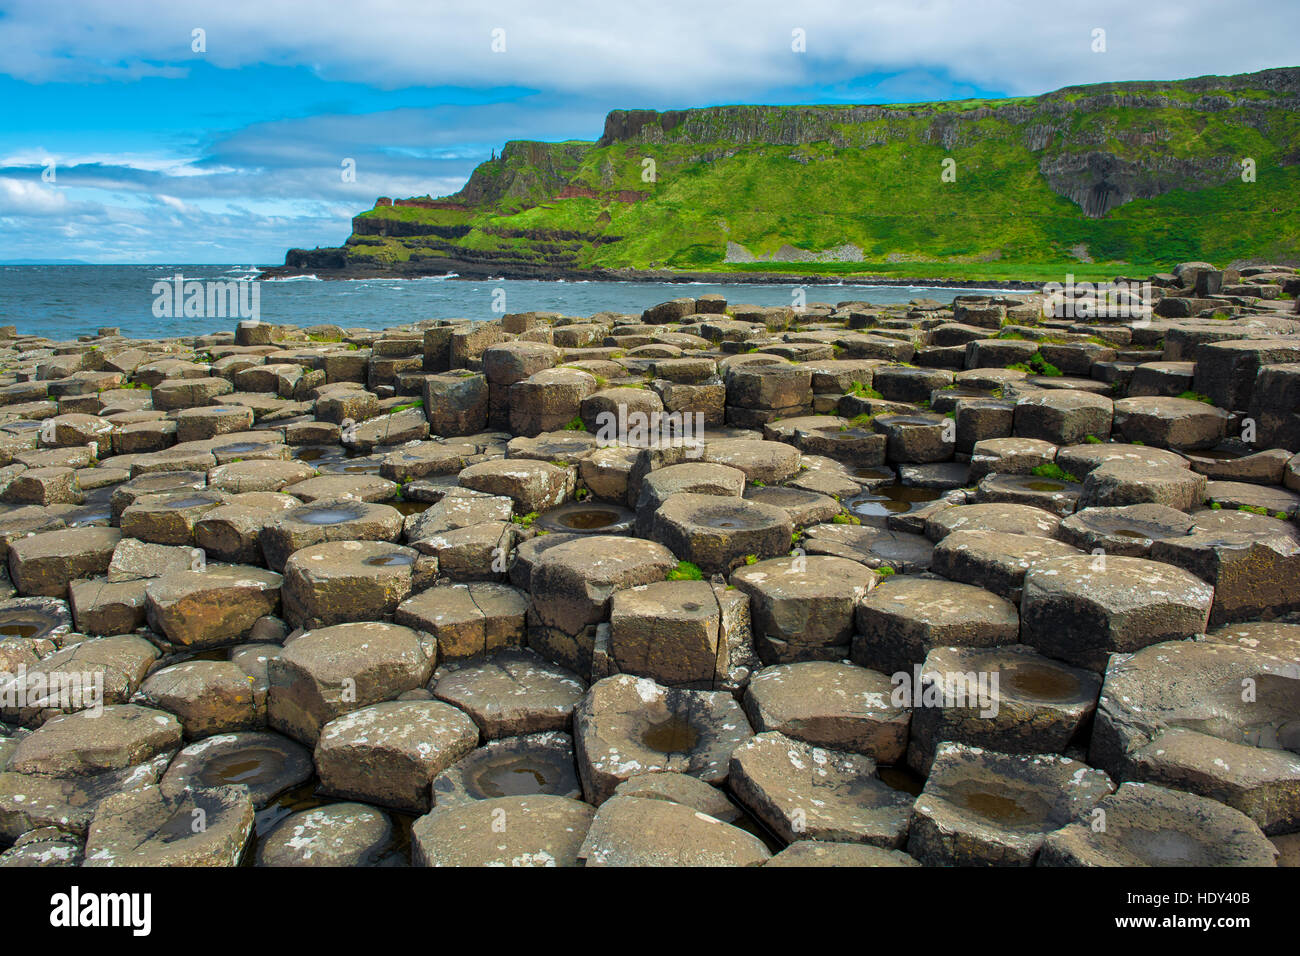 Coast of Giants Causeway in Northern Ireland - Stock Image